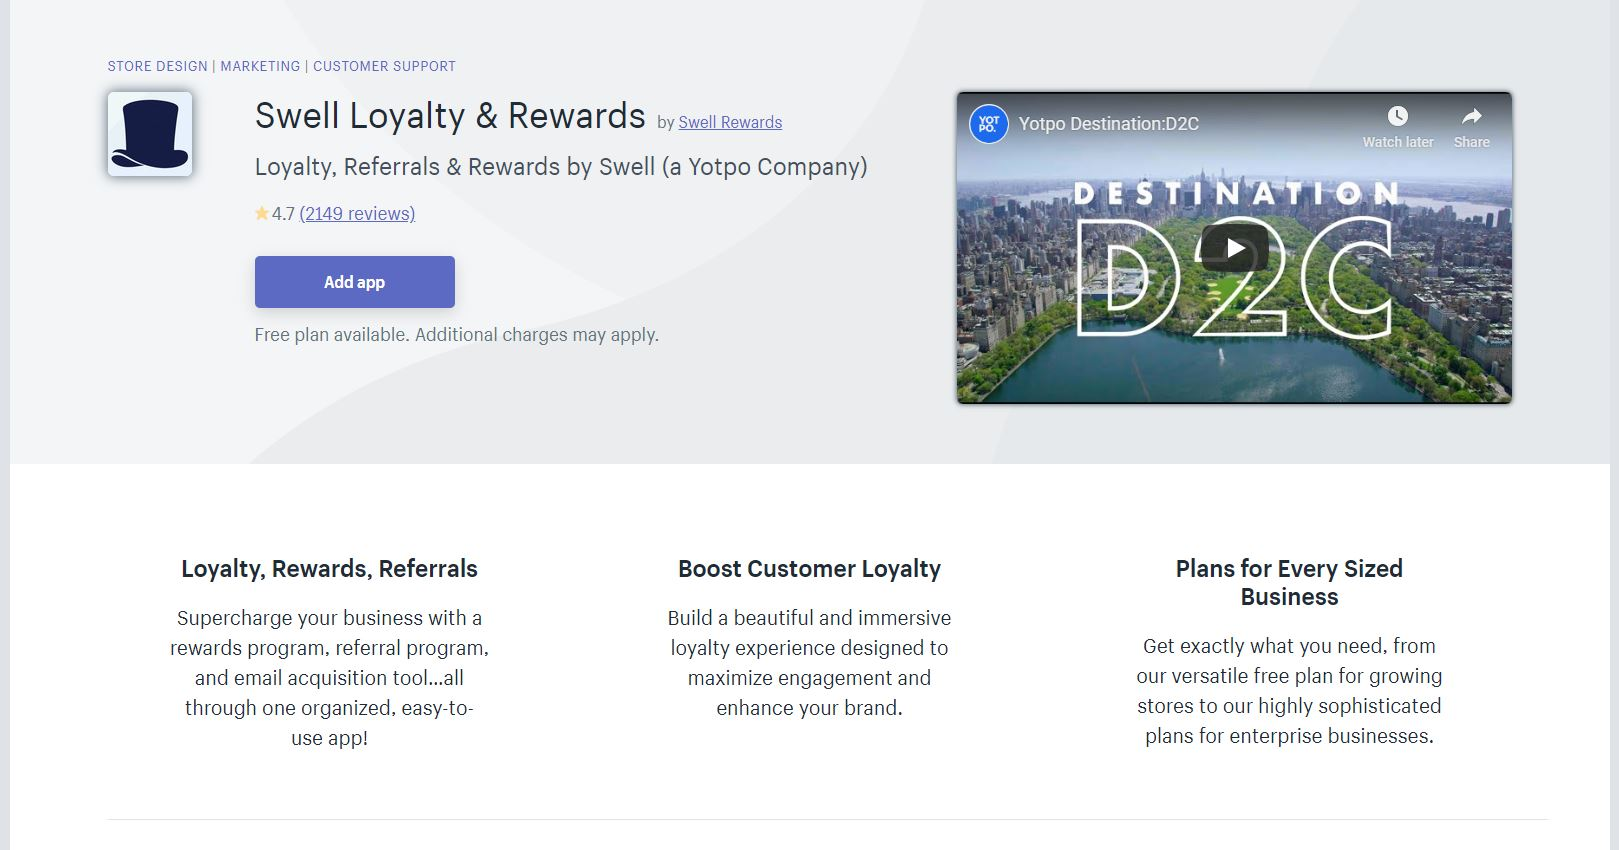 Rewards and Referrals by Swell